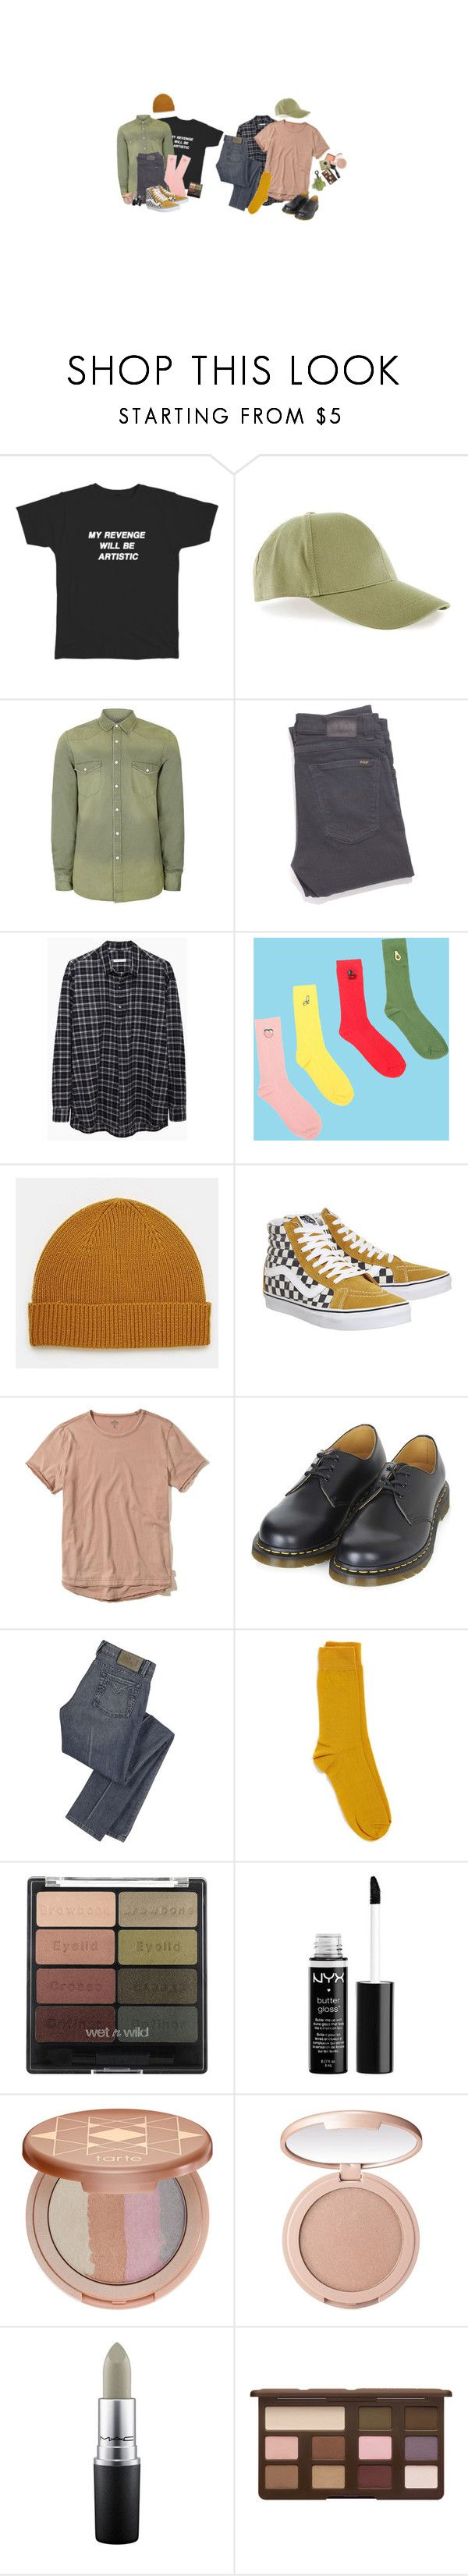 """""""Girl, Where'd You Go?"""" by irondeficient ❤ liked on Polyvore featuring Nudie Jeans Co., 6397, UNIF, ASOS, Vans, Hollister Co., Dr. Martens, Marc by Marc Jacobs, Topman and NYX"""